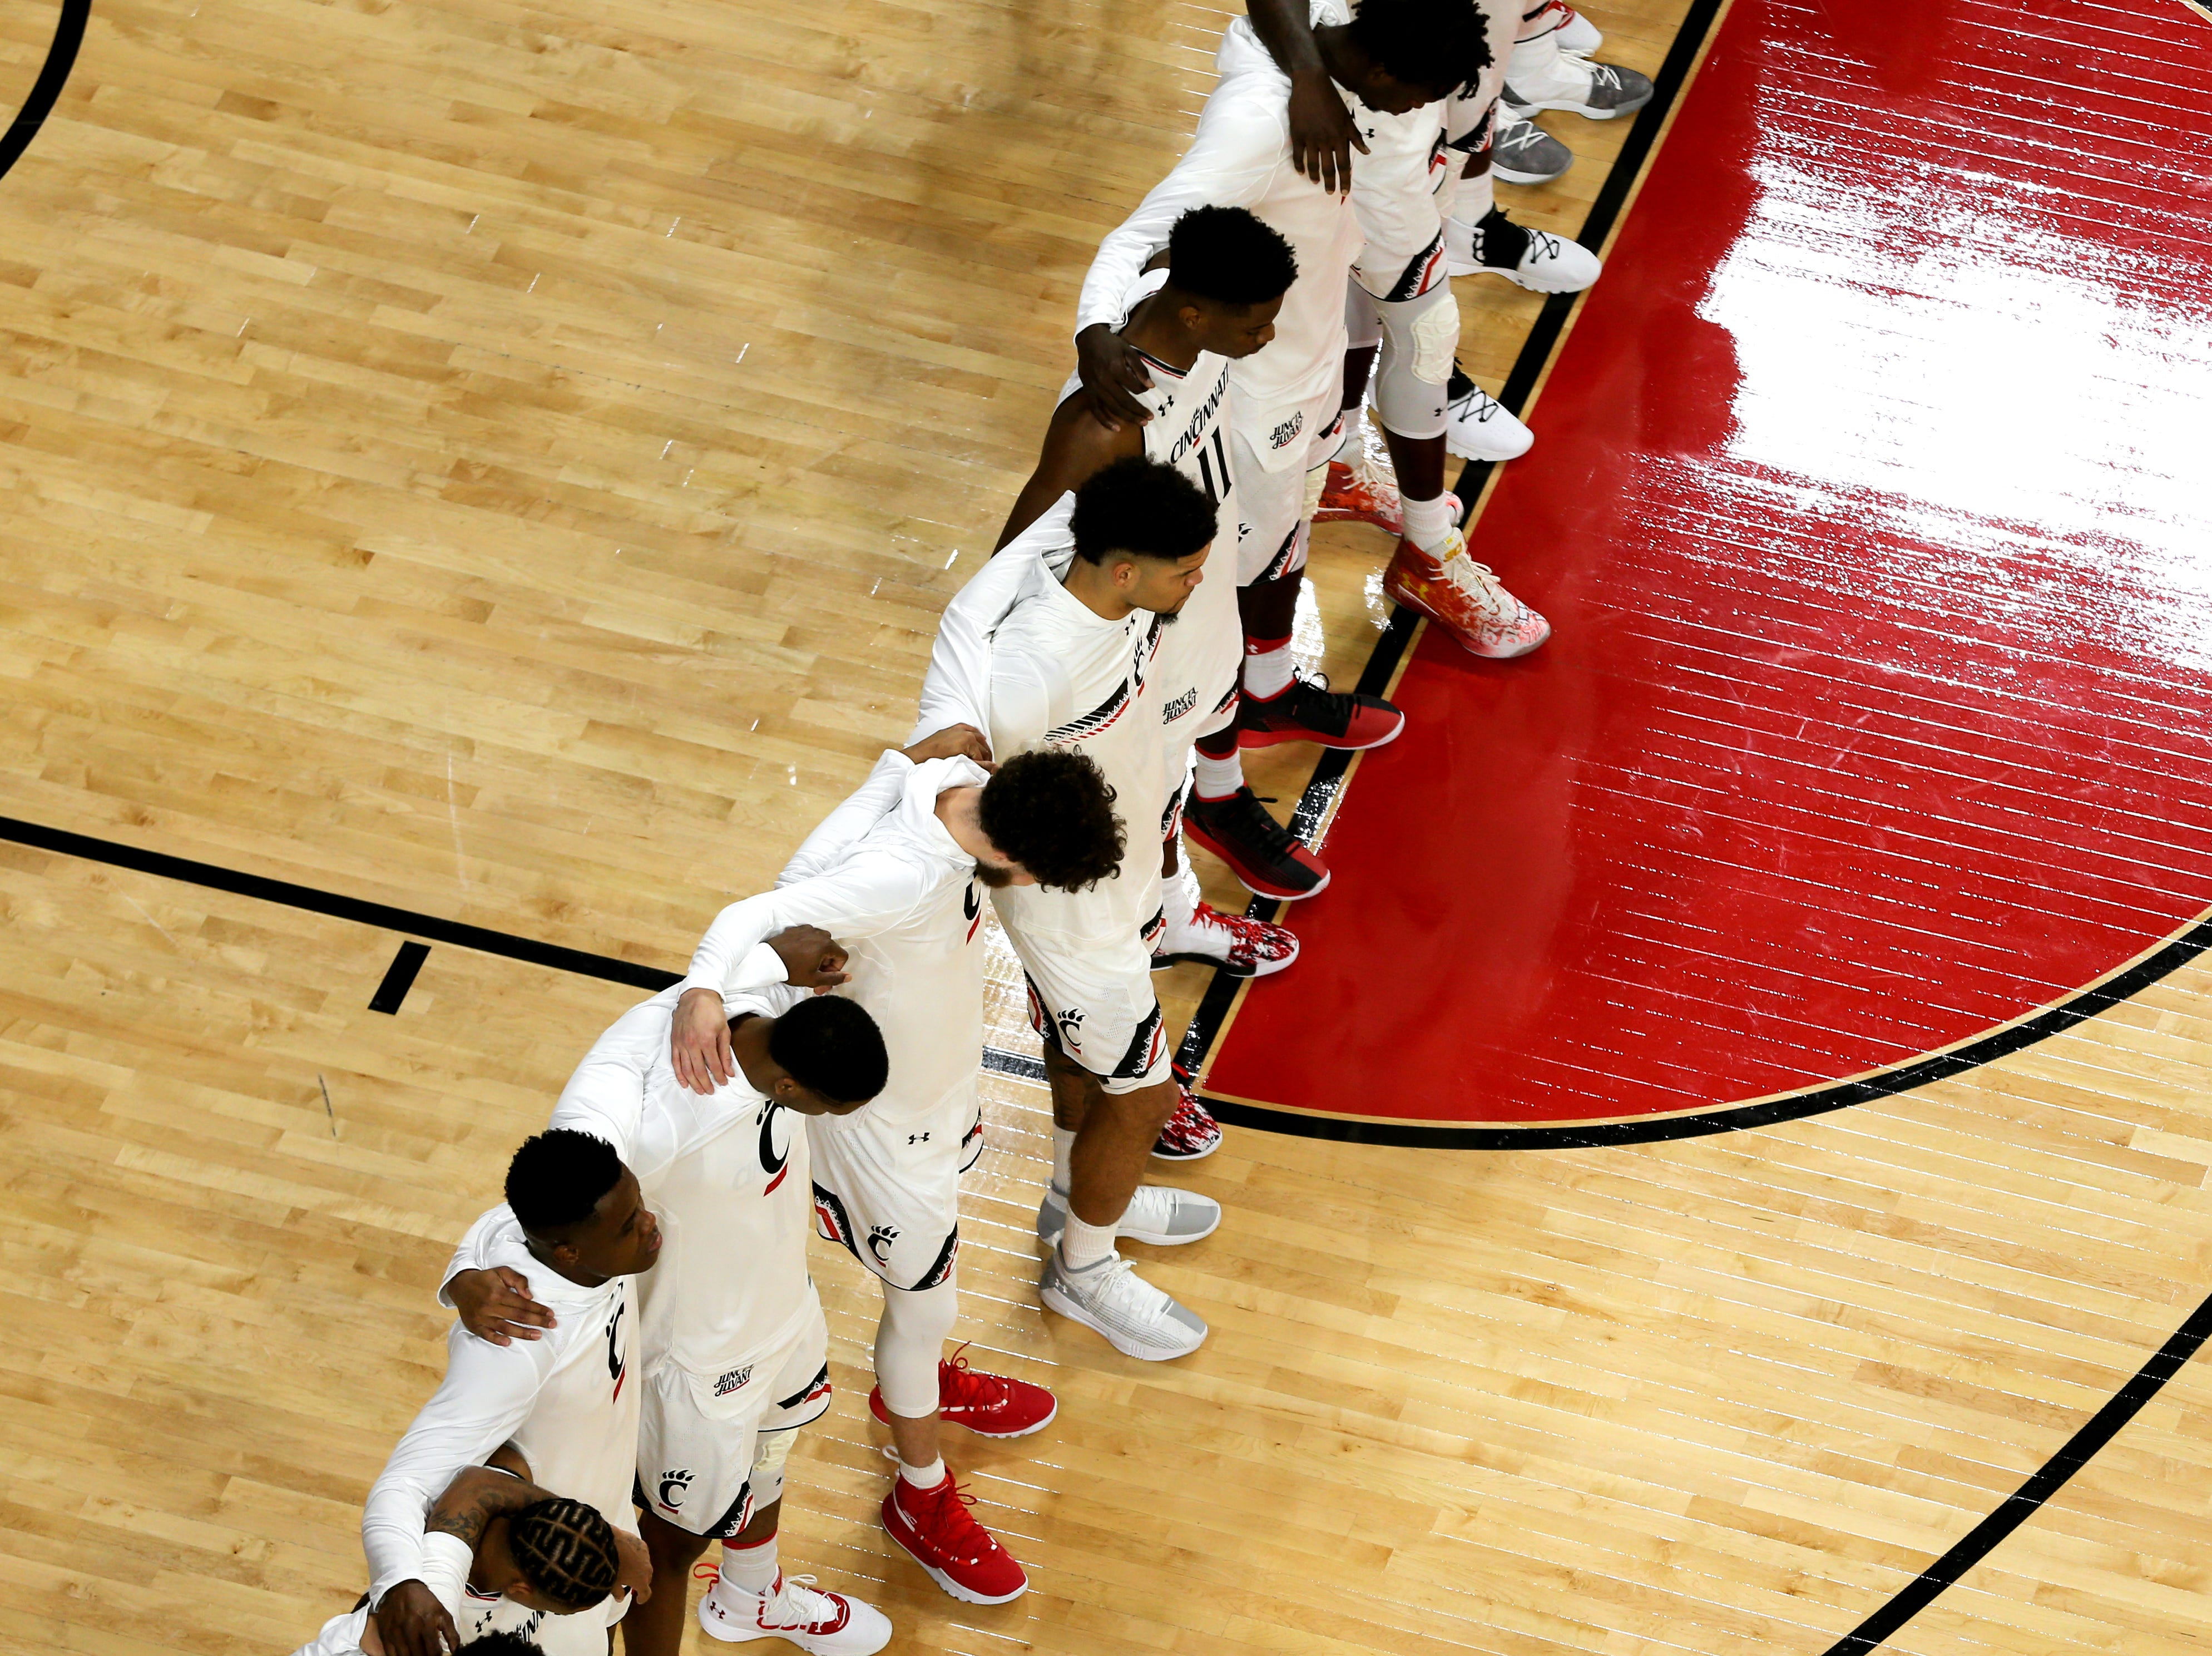 The Cincinnati Bearcats basketball team stands for the national anthem before a college basketball game between the Ohio State Buckeyes and the Cincinnati Bearcats, Wednesday, Nov. 7, 2018, at Fifth Third Arena in Cincinnati.